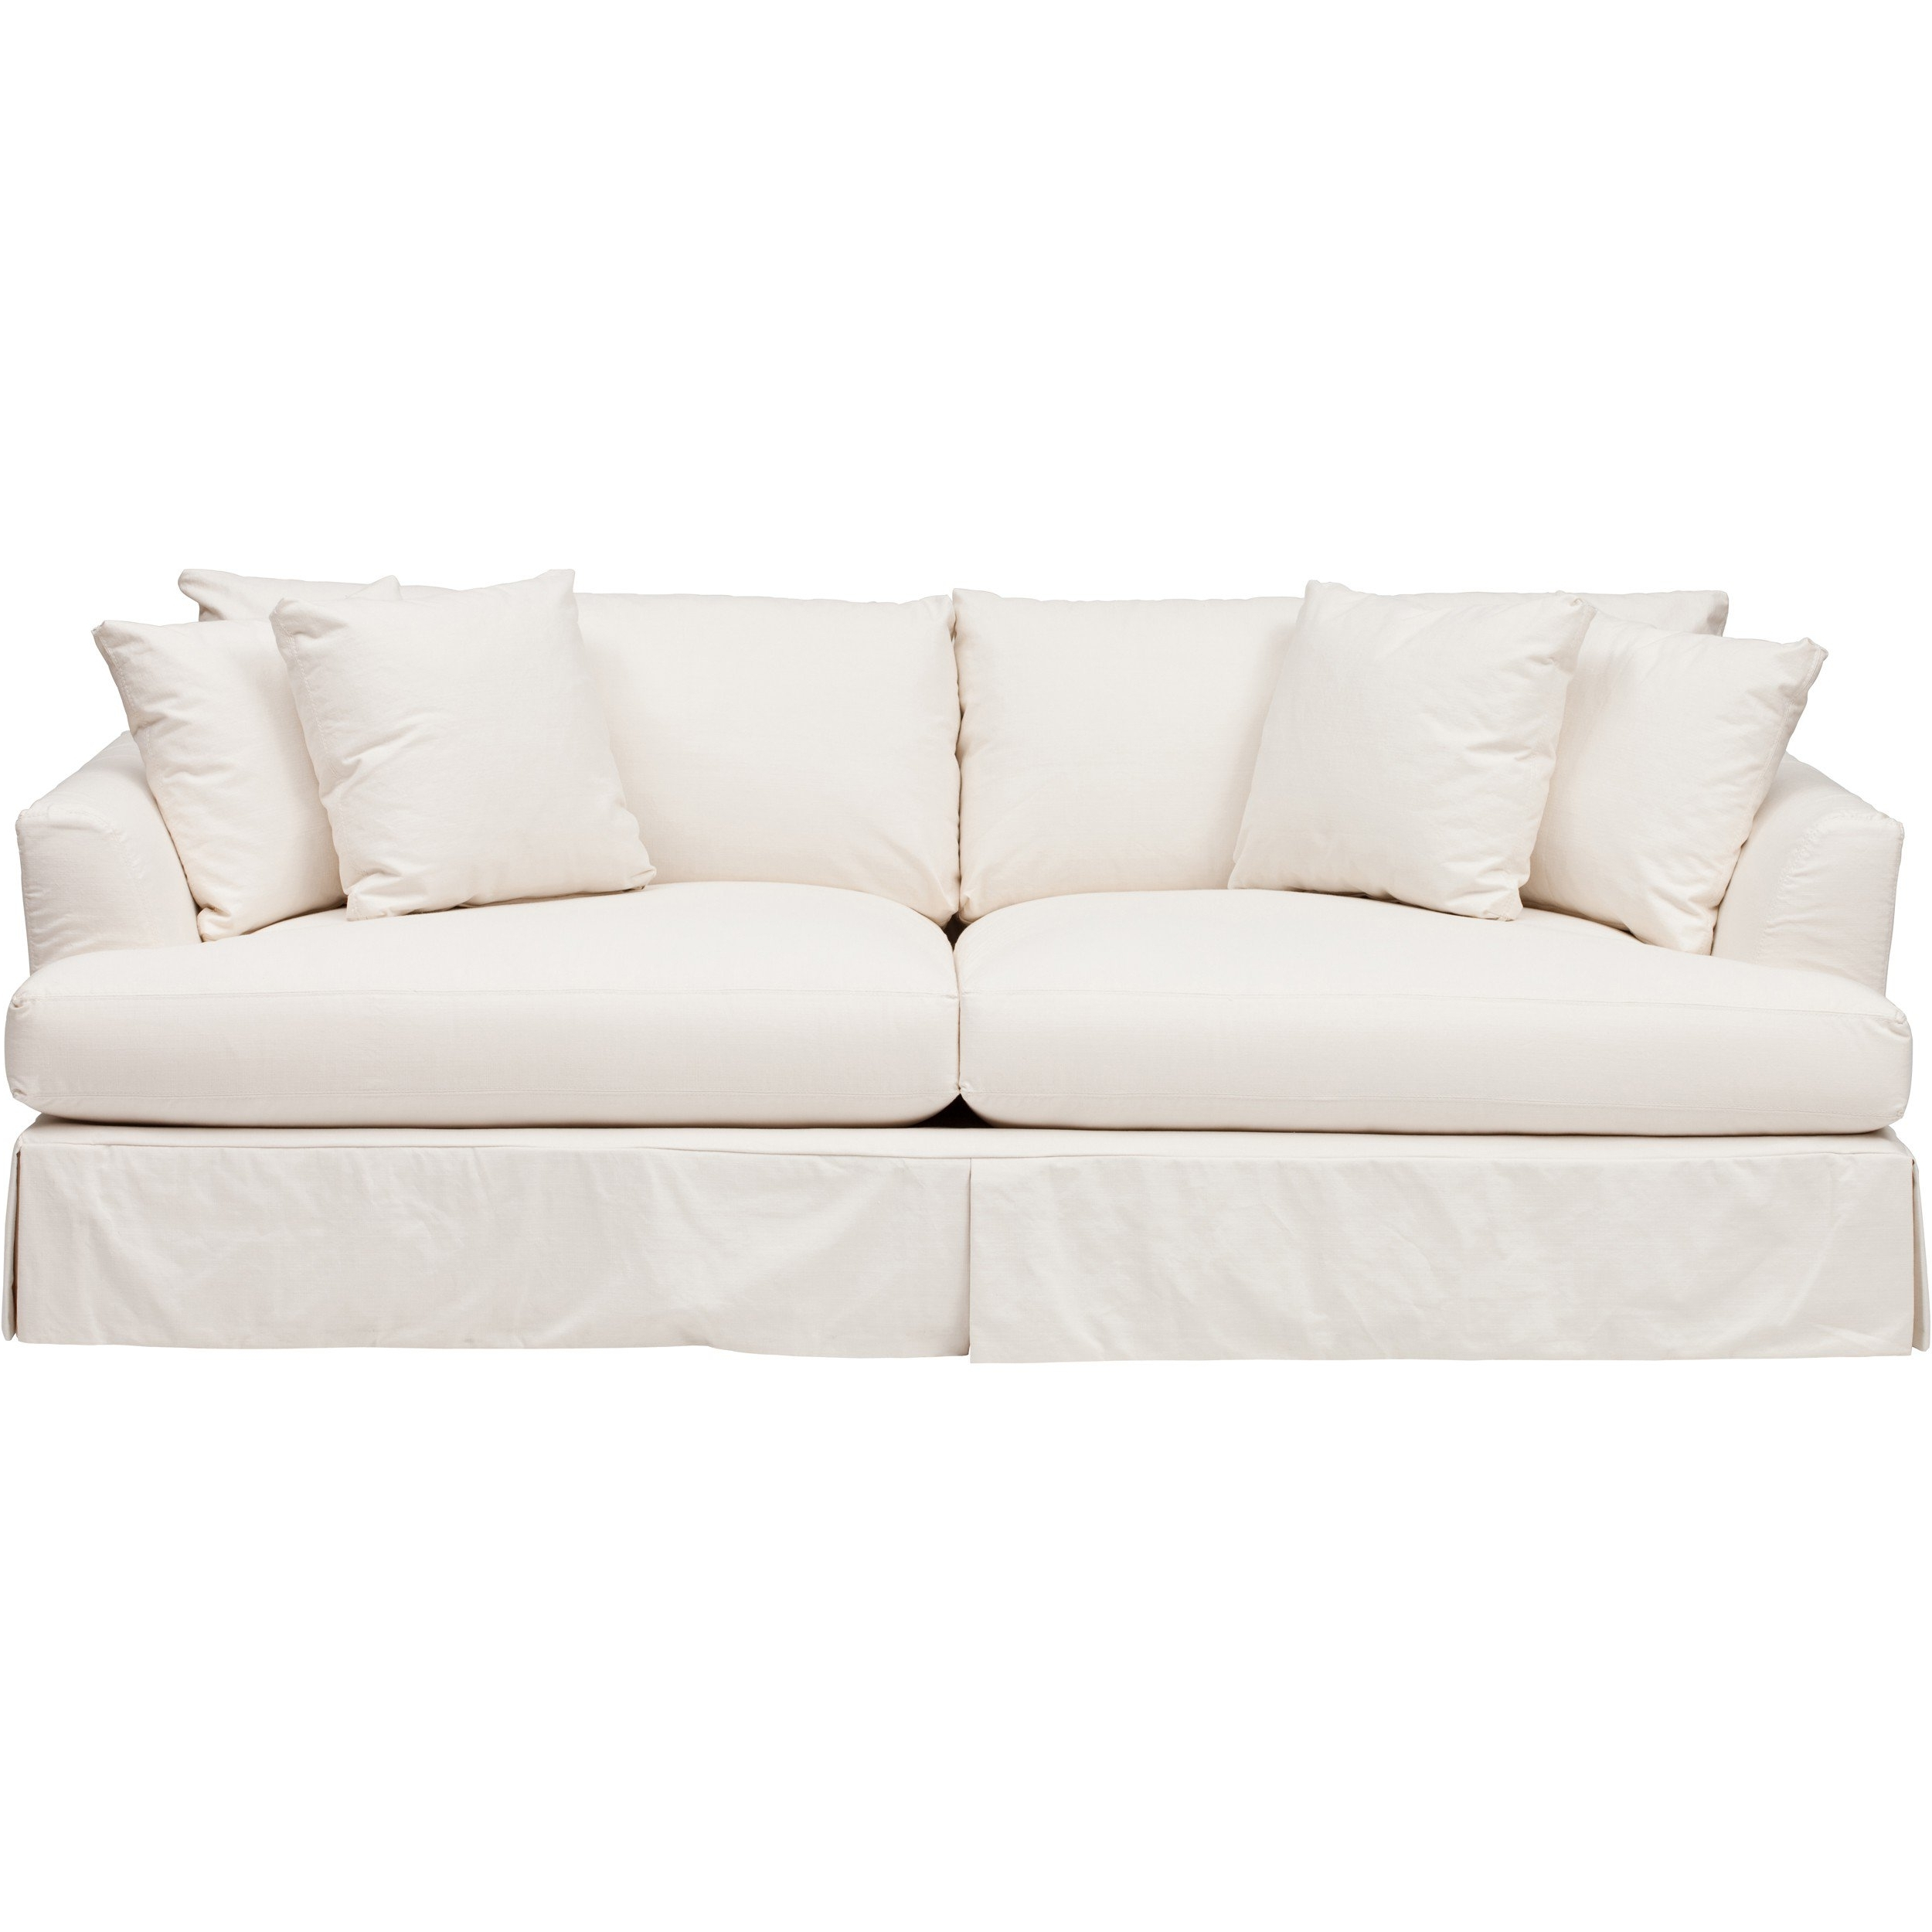 Most Recently Released Andre Slipcover Sofa, Dyno White – Sofas – Custom Upholstery With Regard To White Sofa Chairs (View 6 of 20)